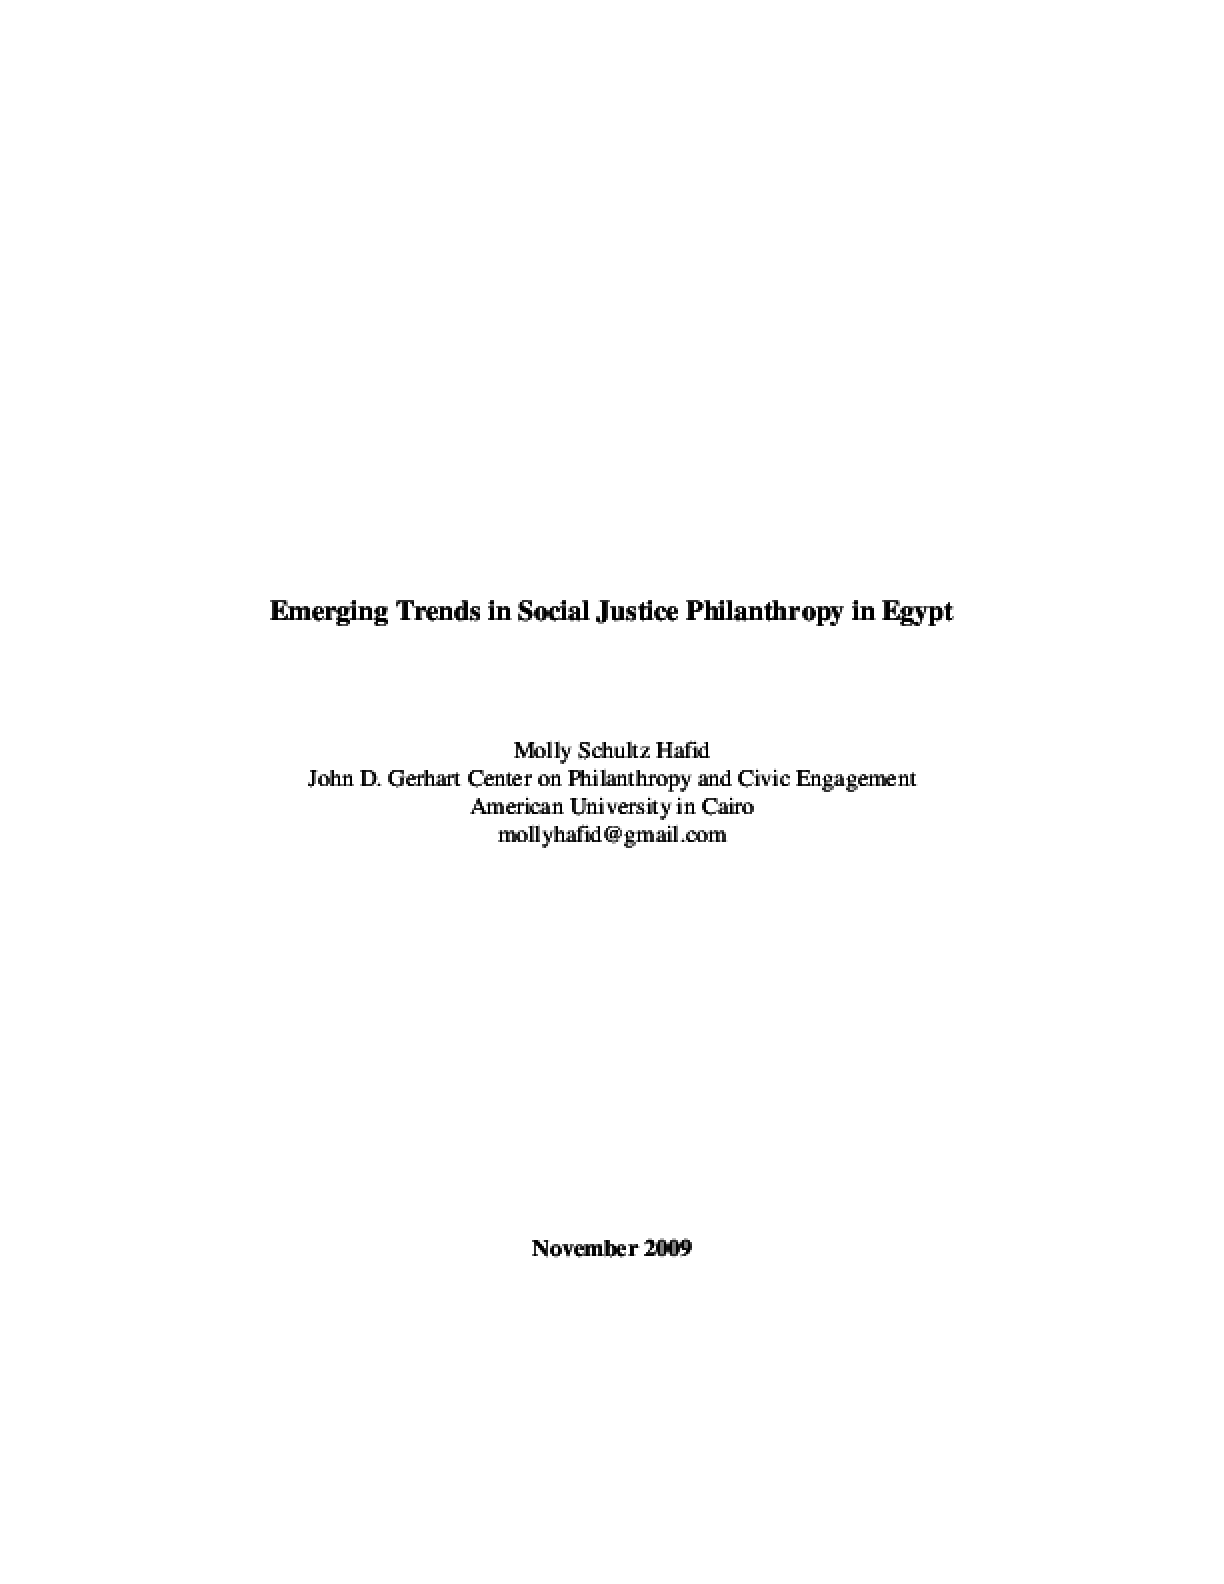 Emerging Trends in Social Justice Philanthropy in Egypt